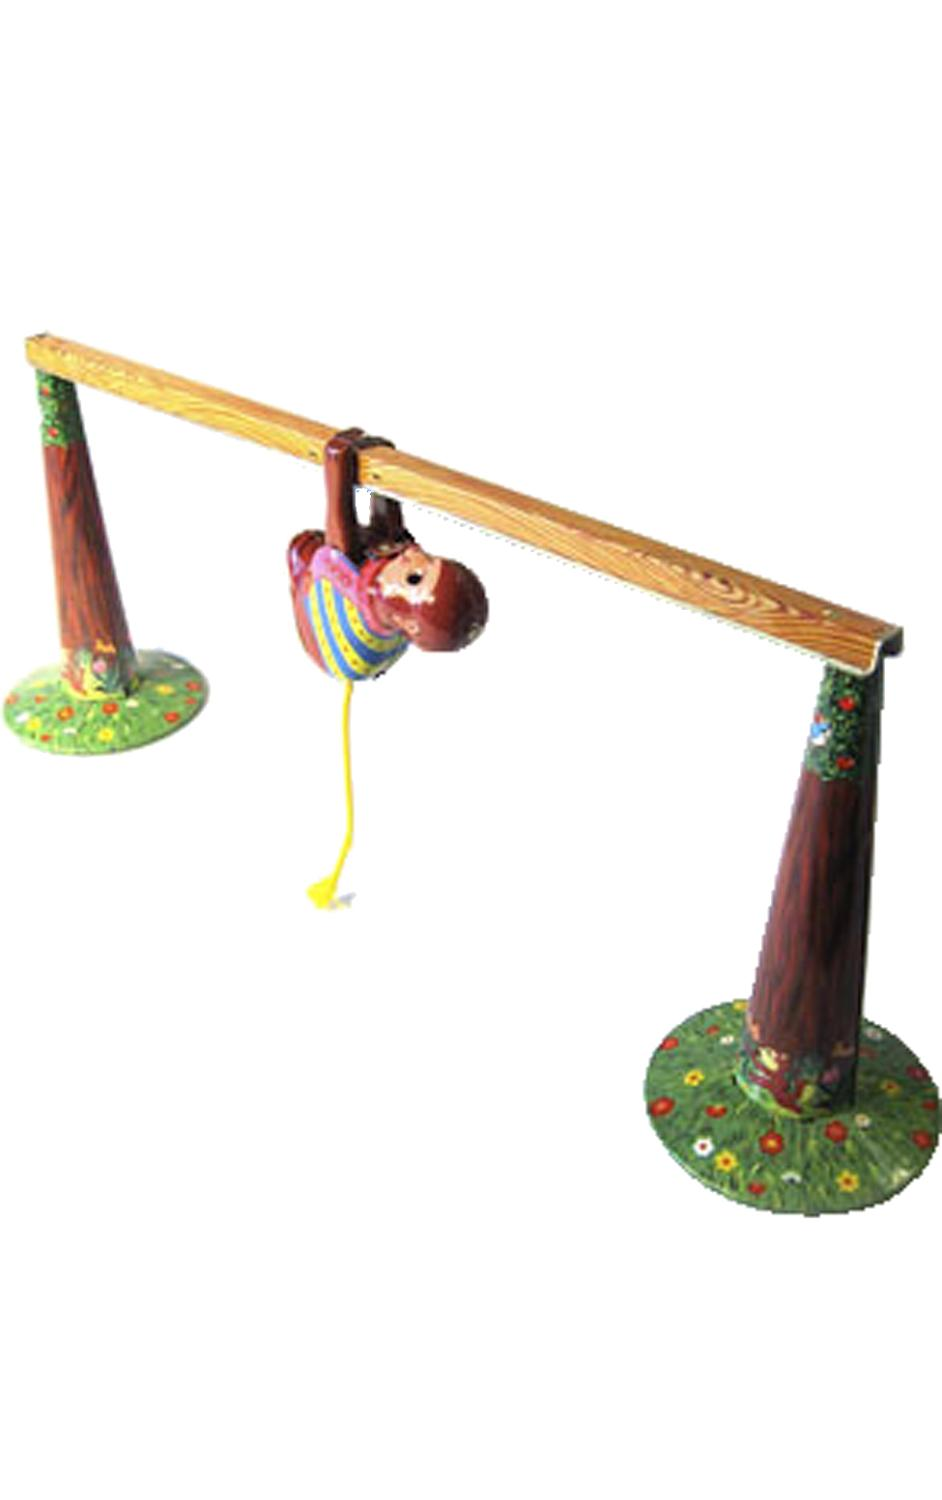 MS443 - Collectible Tin Toy - Monkey on Bar - 4